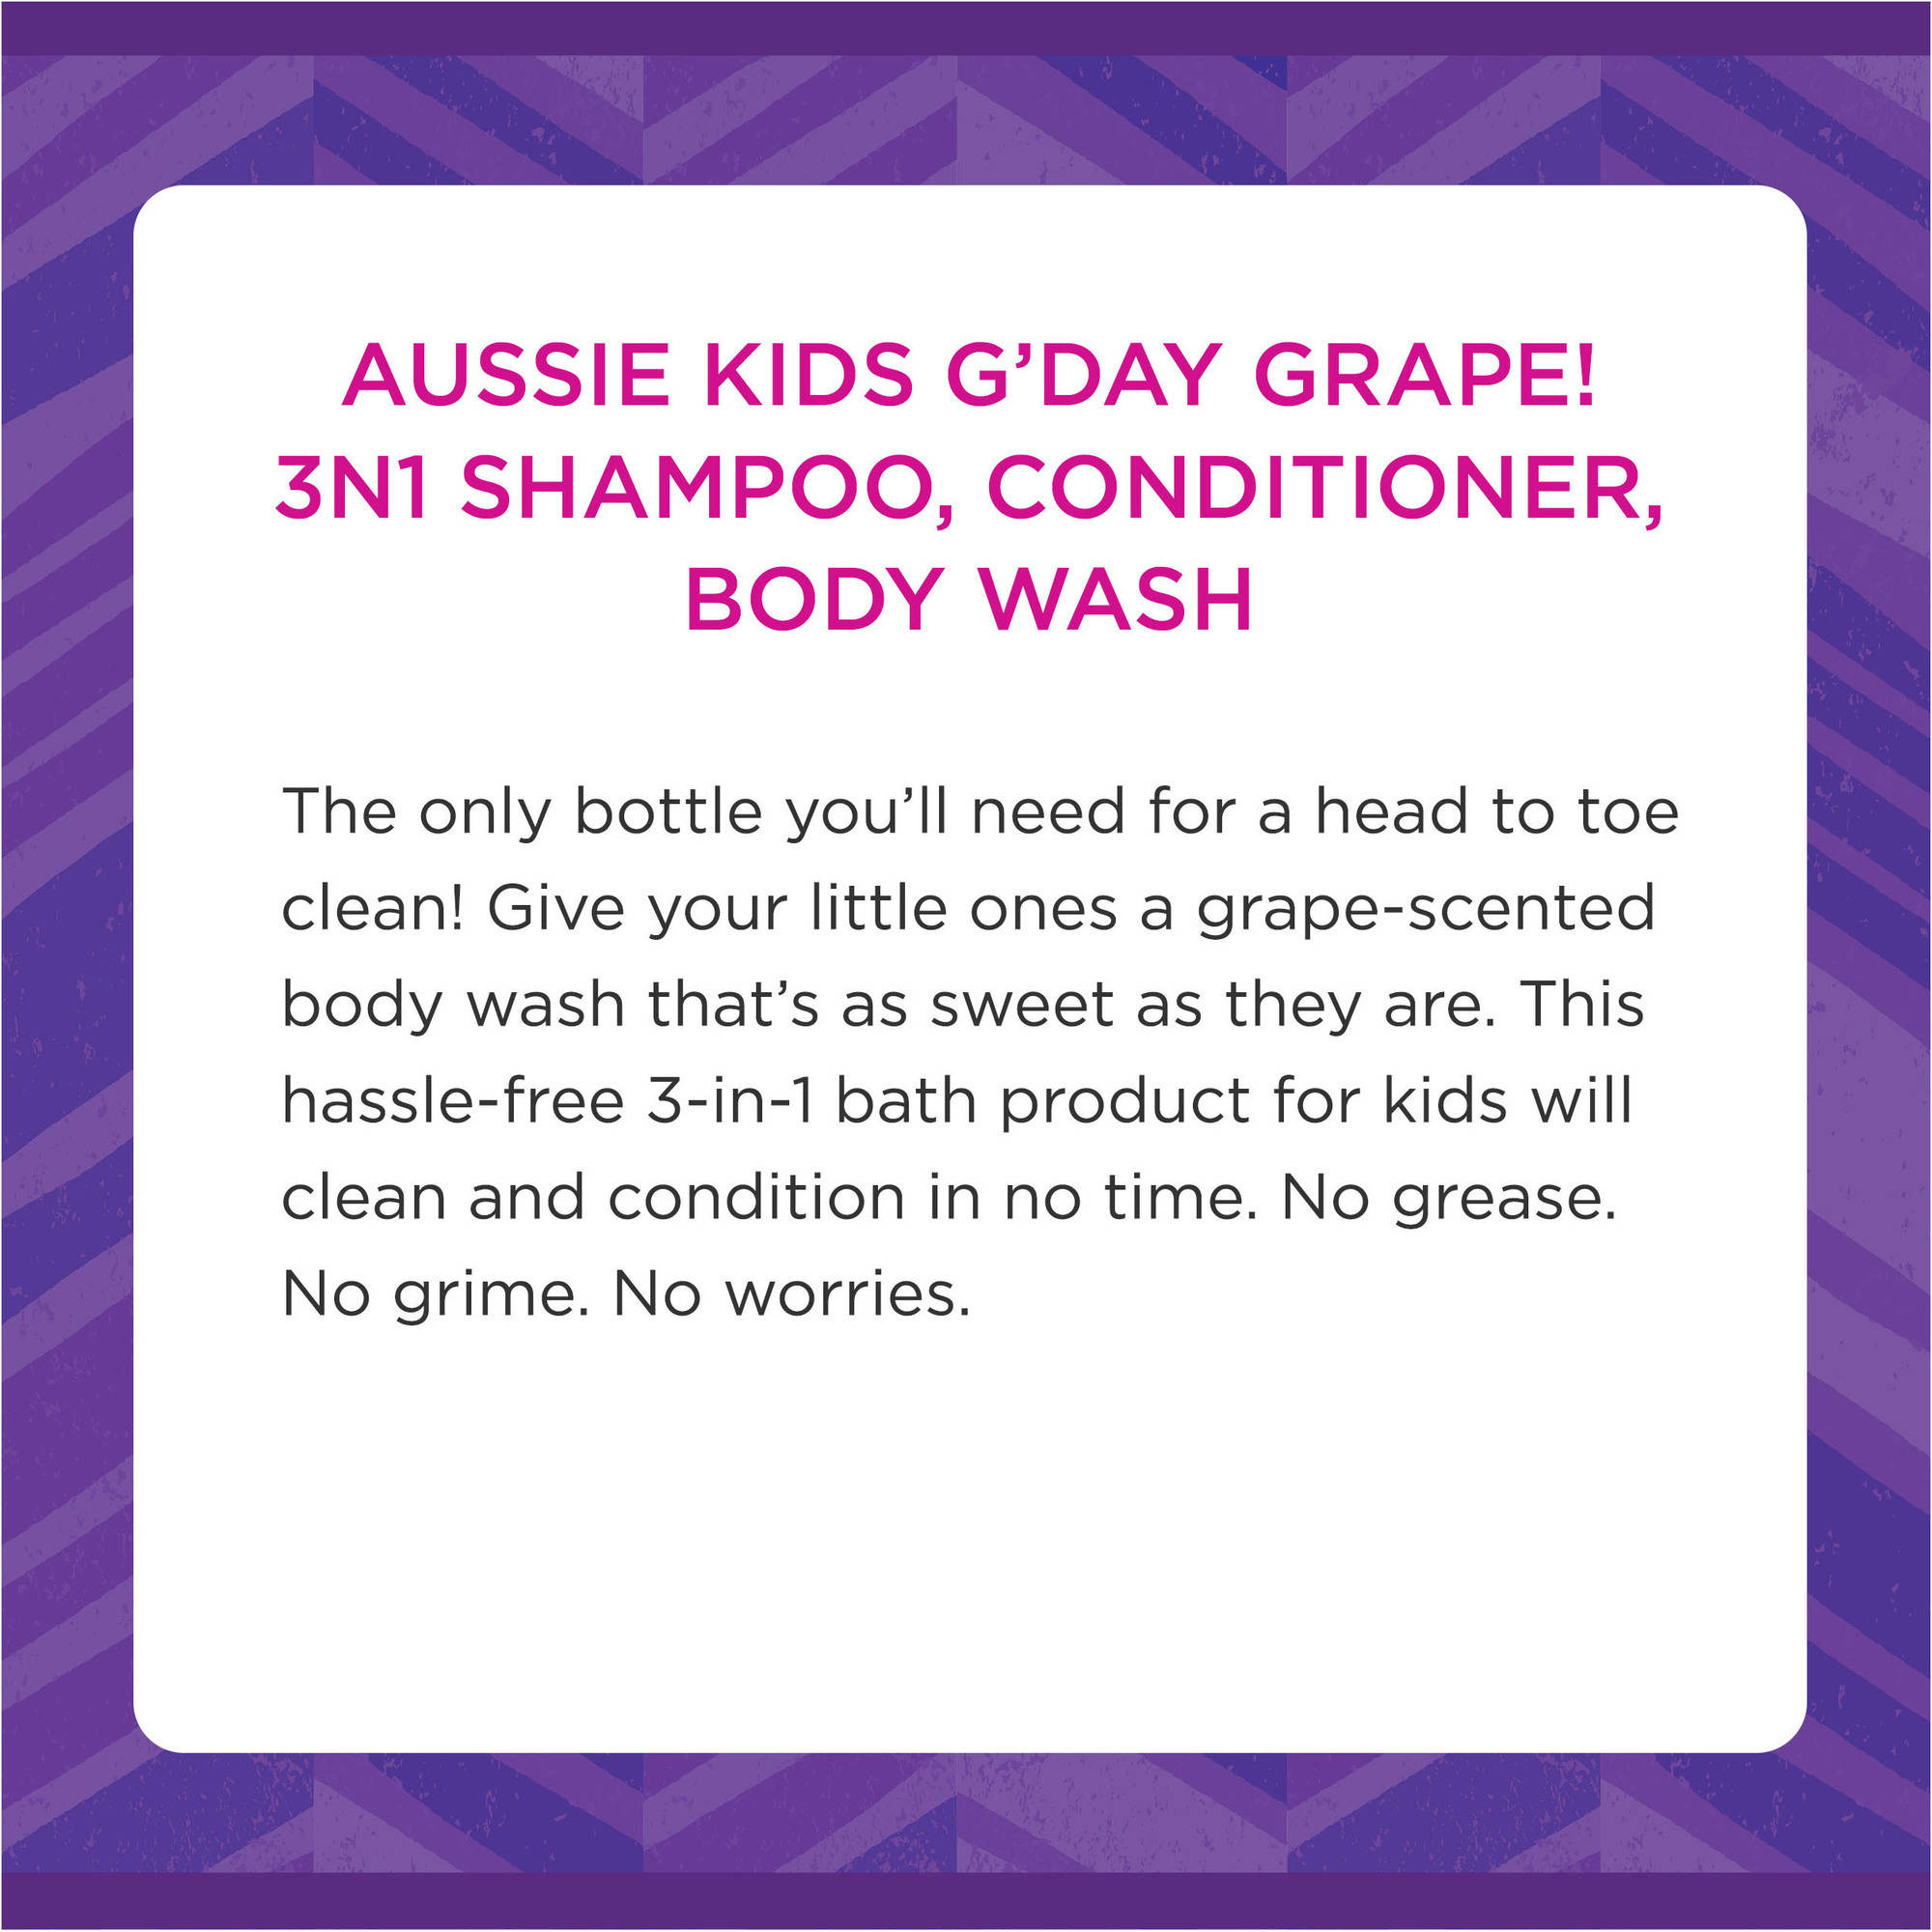 Aussie kids 3 in 1 shampoo conditioner body wash gday grape aussie kids 3 in 1 shampoo conditioner body wash gday grape 292 oz walmart 1betcityfo Gallery